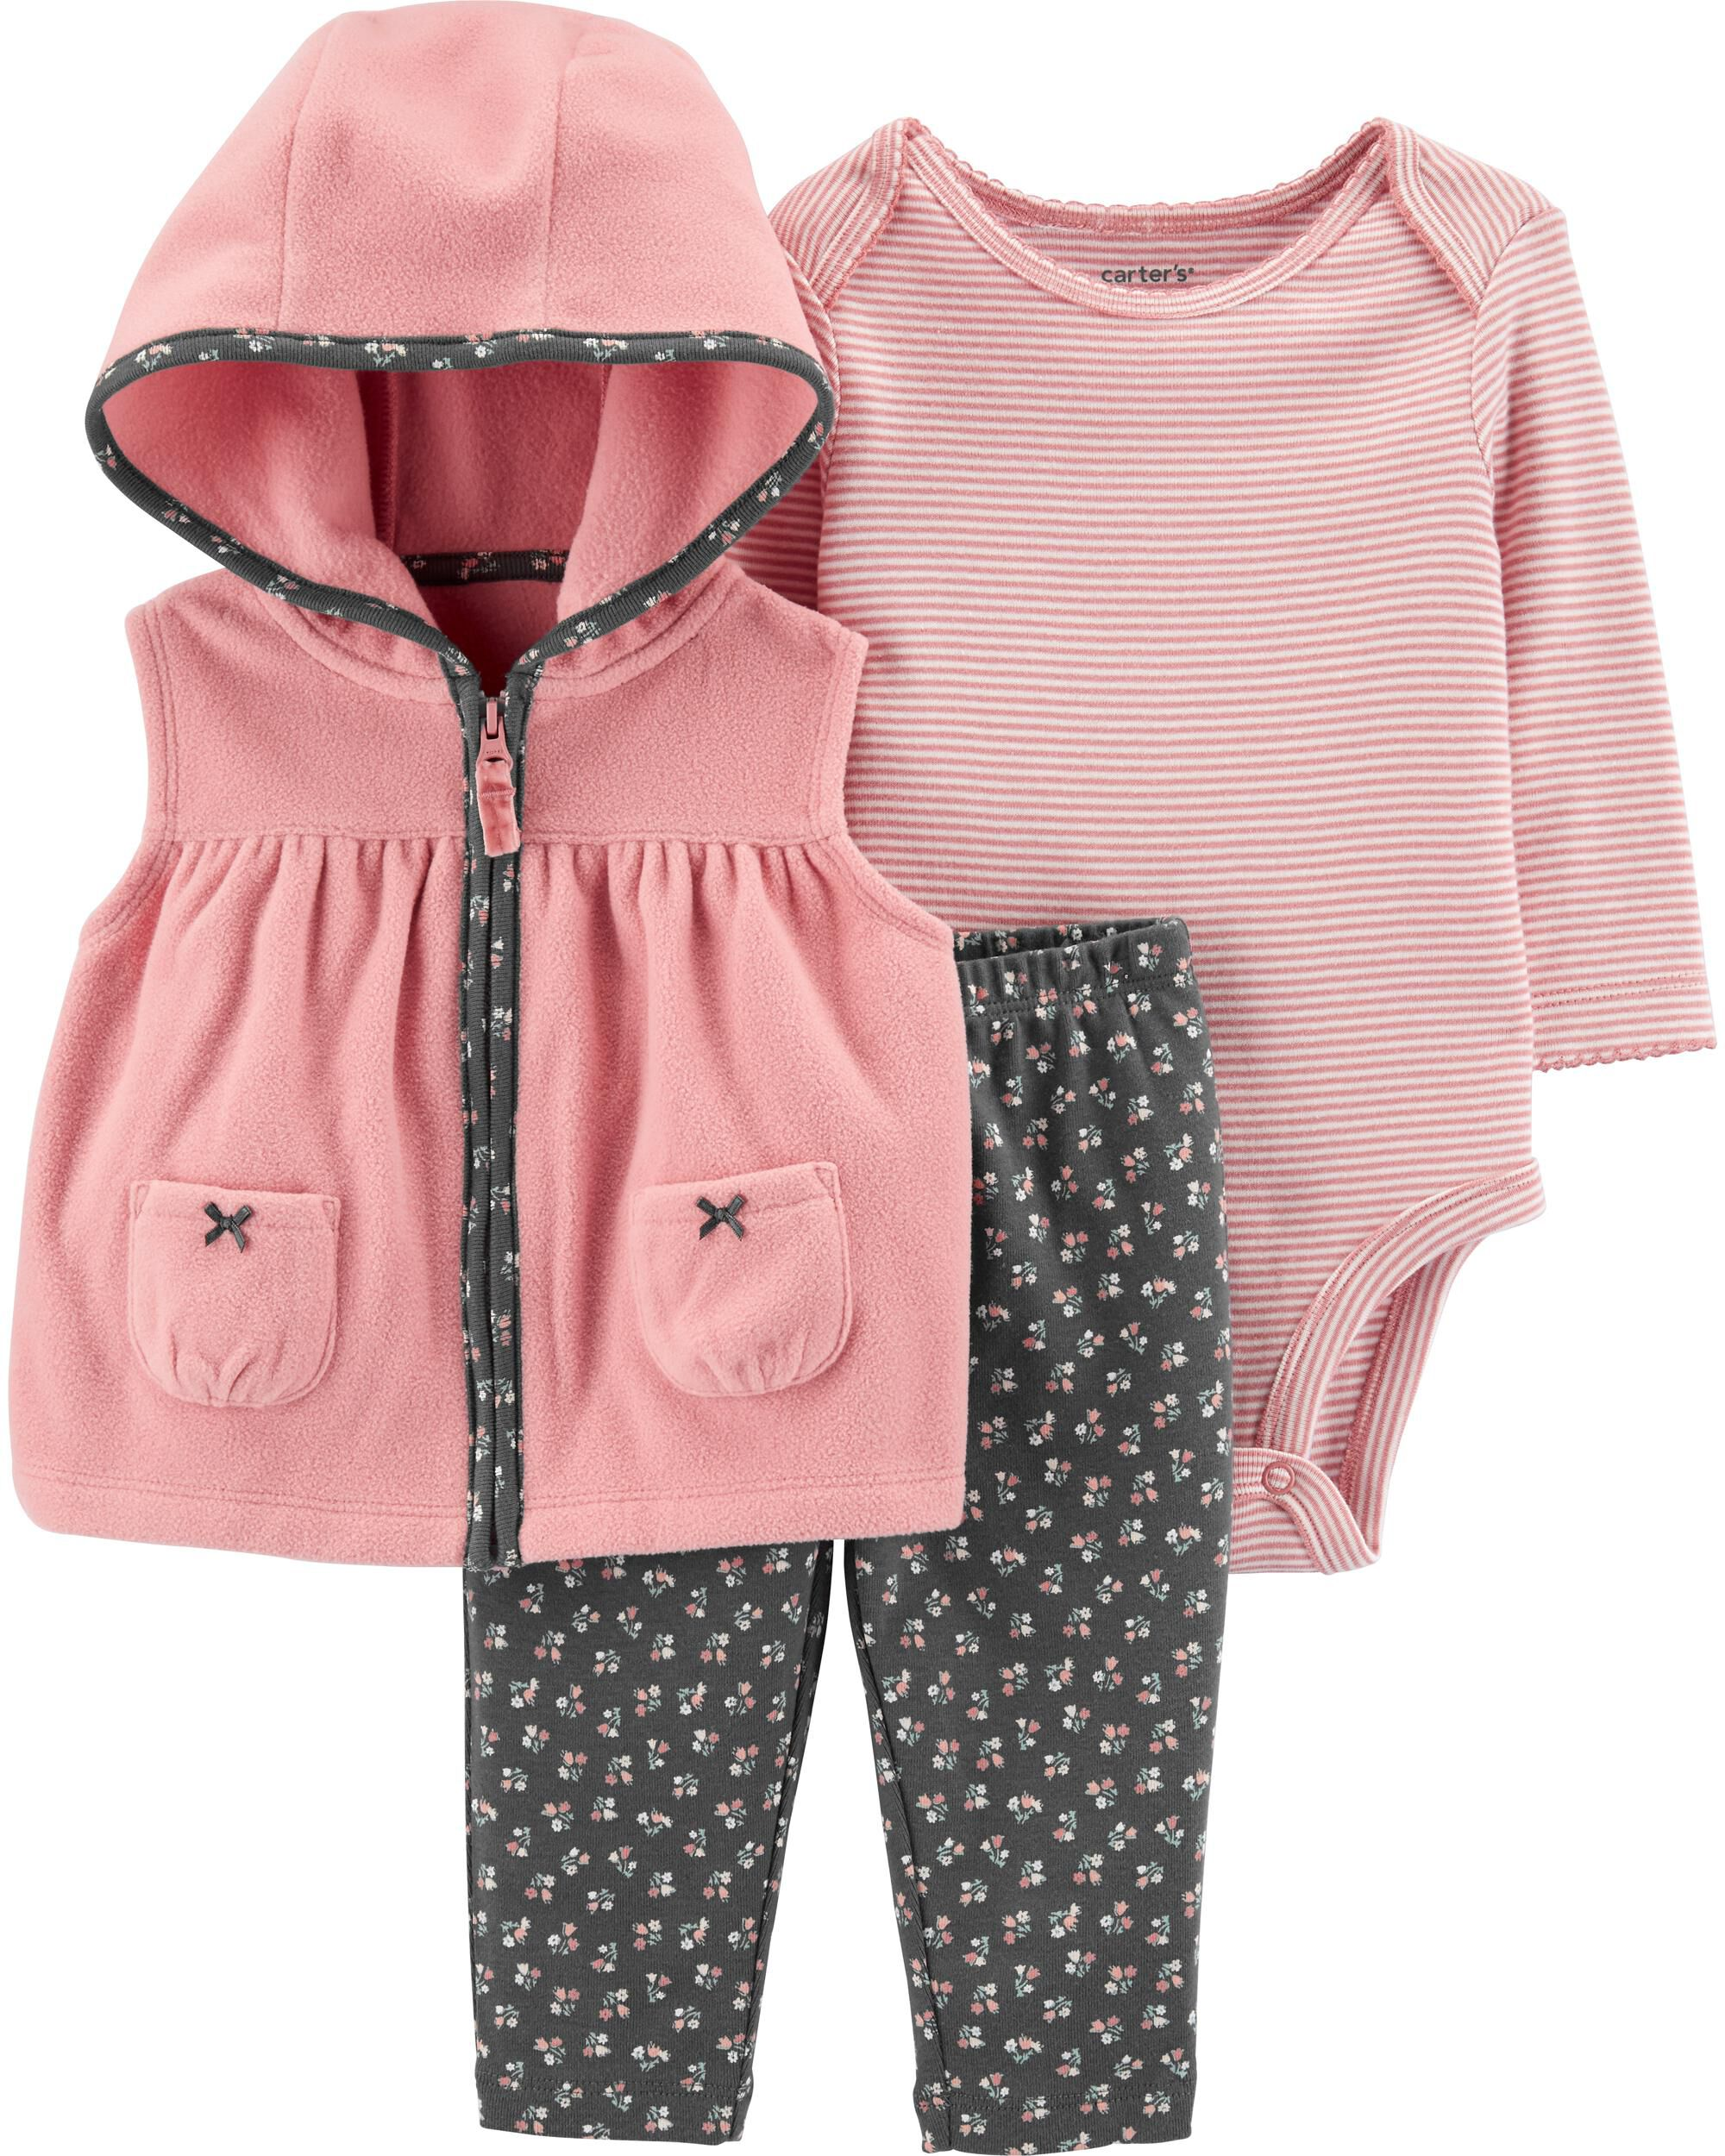 Carters 3 18 Months Hooded Red Vest Bodysuit Pants Set Baby Girl Clothes Holiday